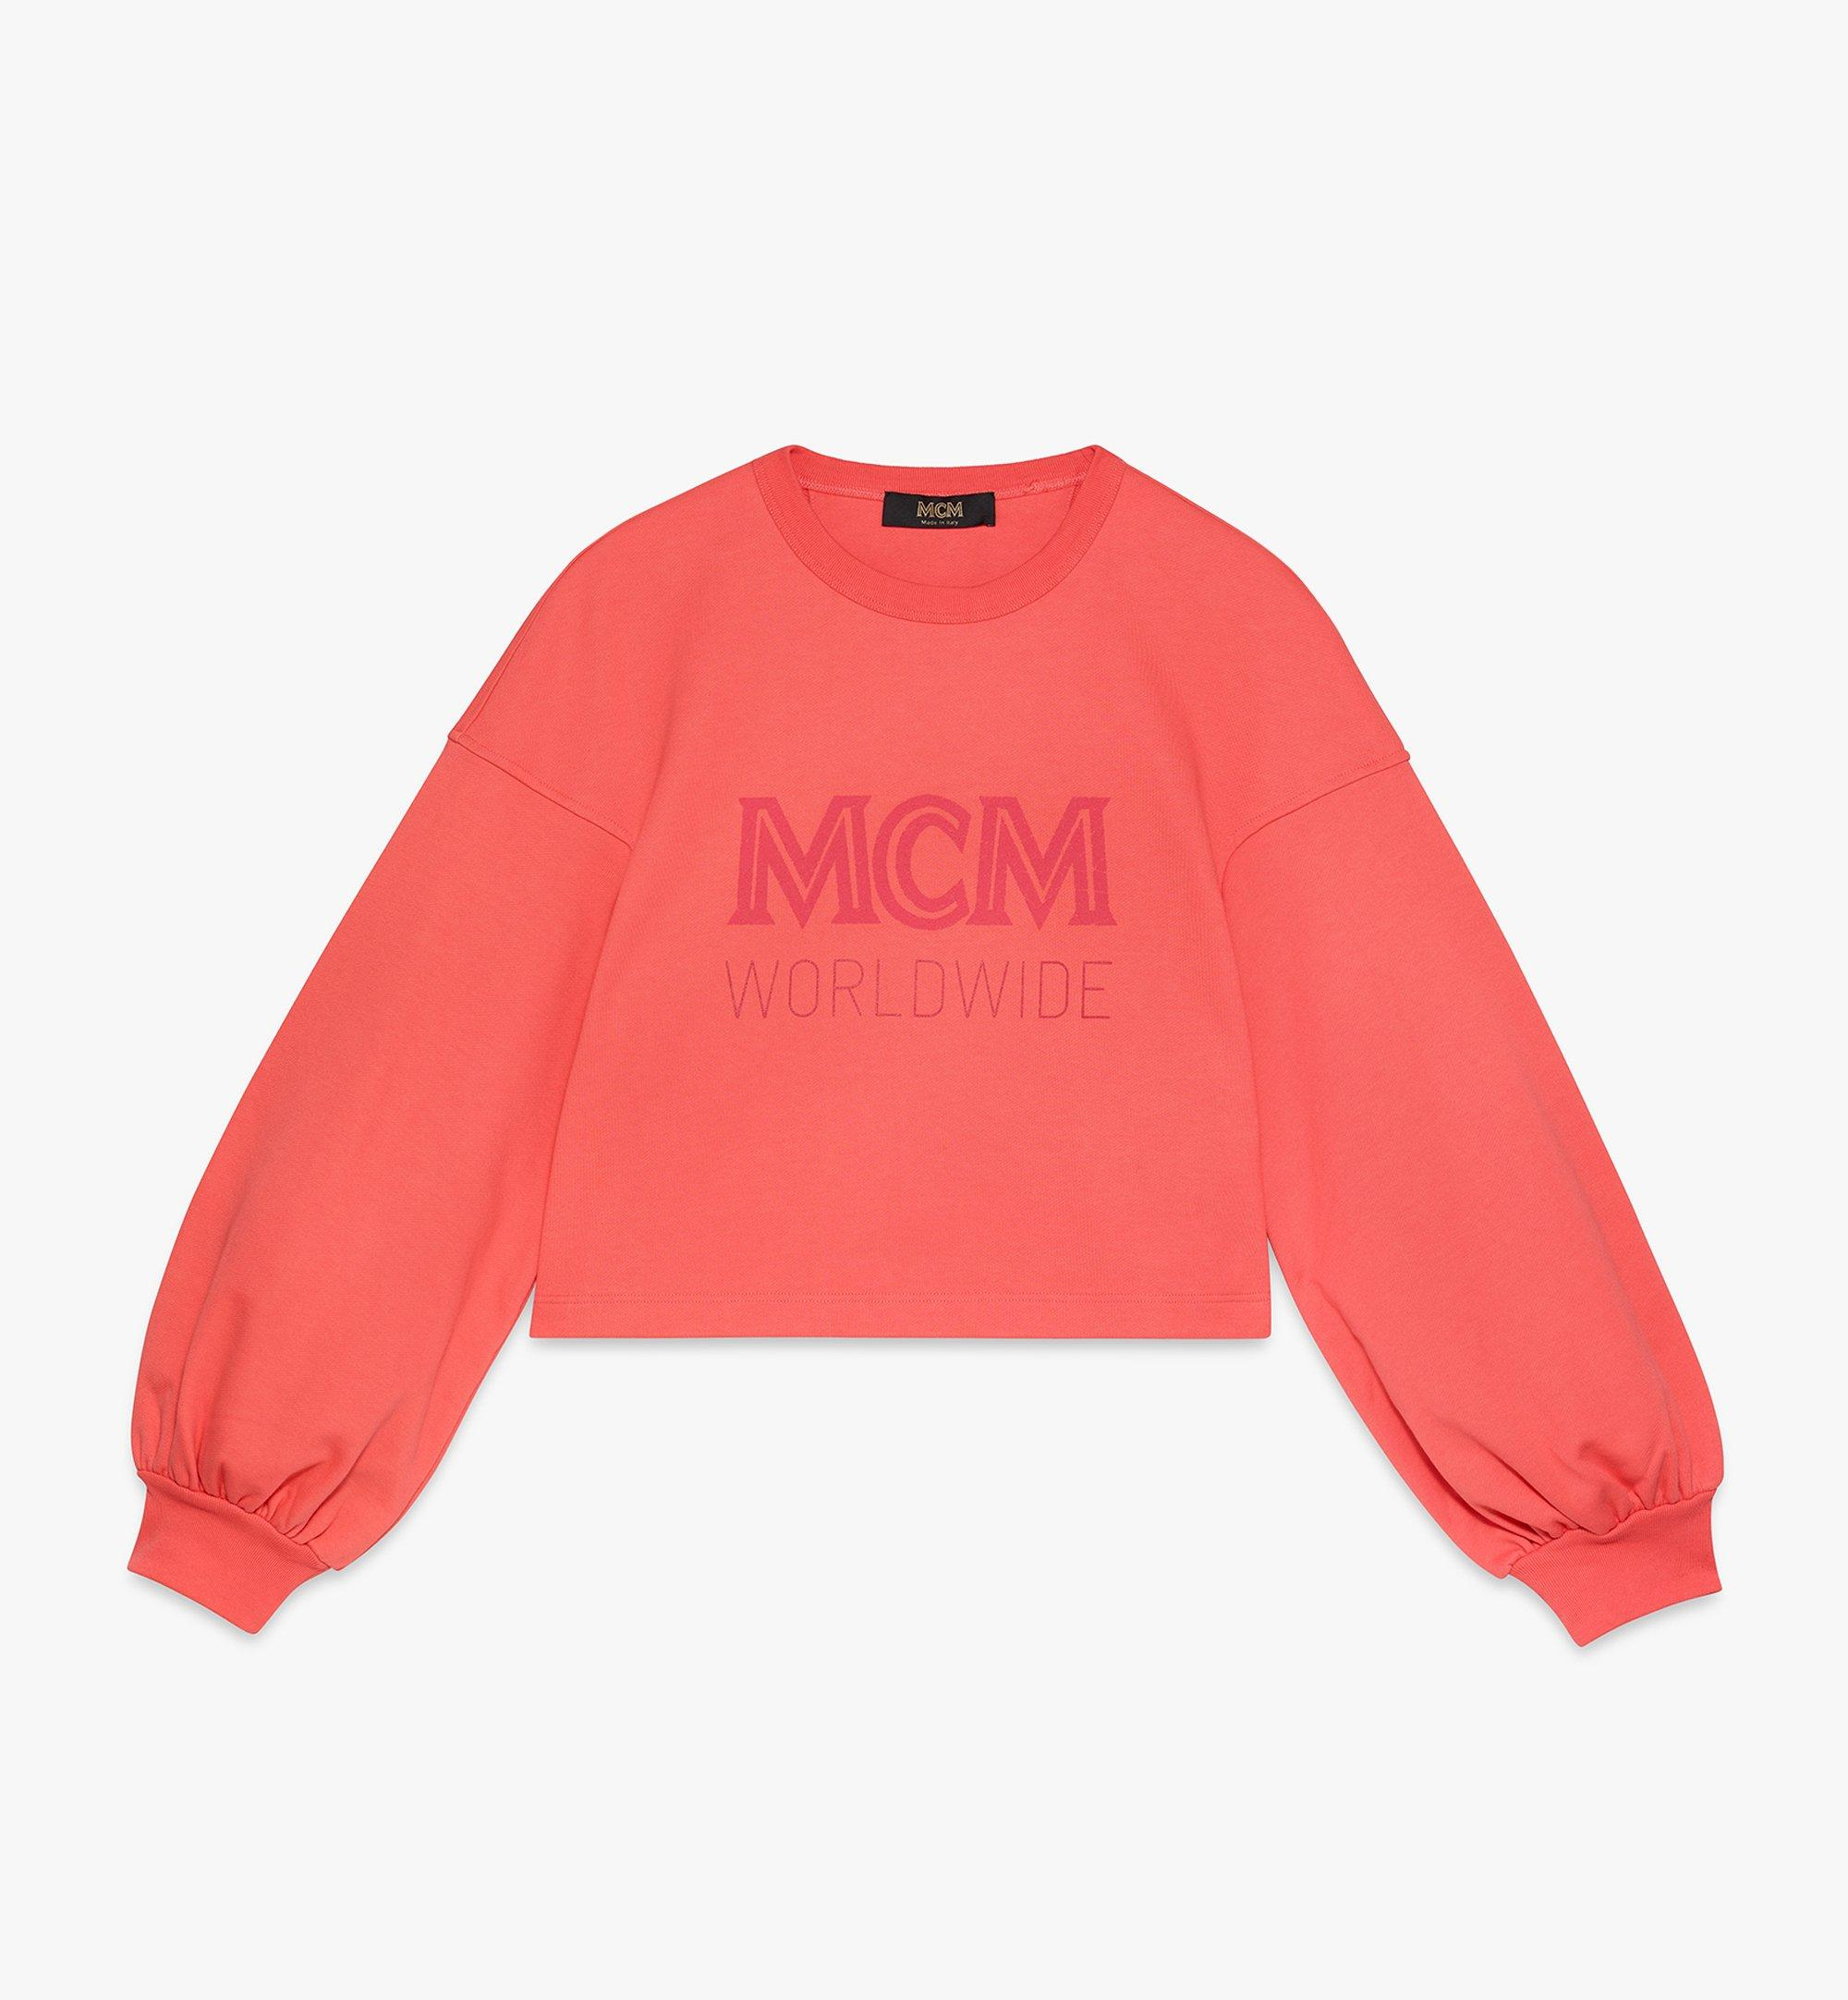 MCM Women's MCM Worldwide Sweatshirt Pink MFAASMM03O300M Alternate View 1